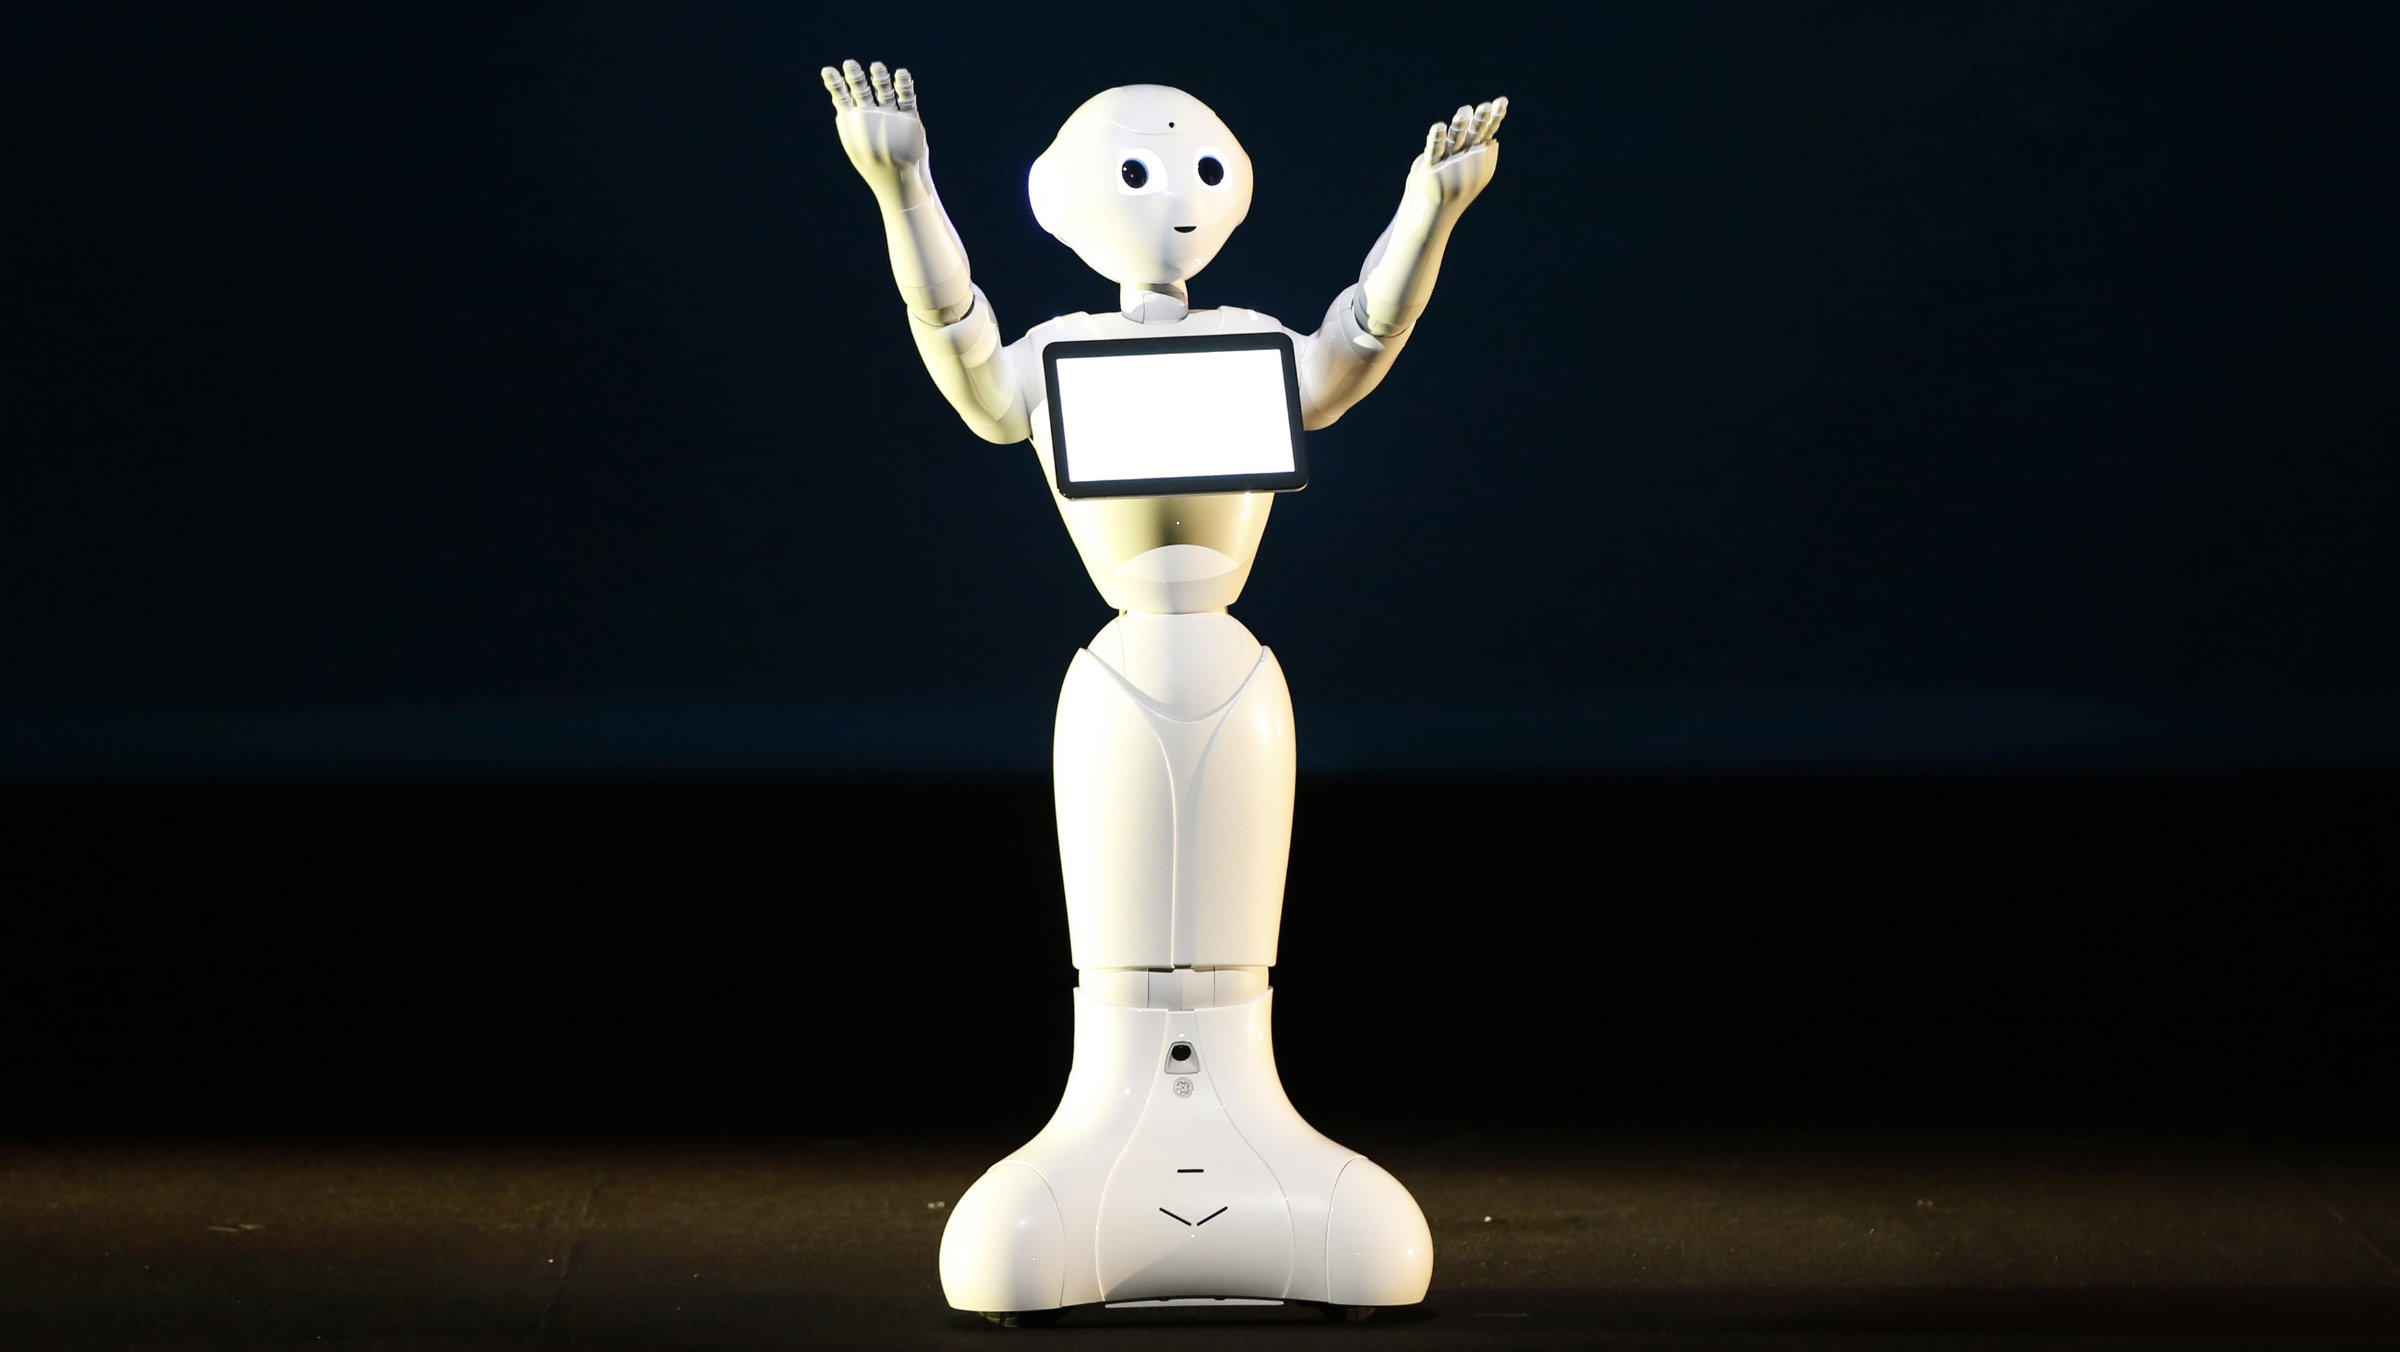 SoftBank Corp. unveils human-like robots named 'pepper' at the company's news conference in Urayasu, east of Tokyo